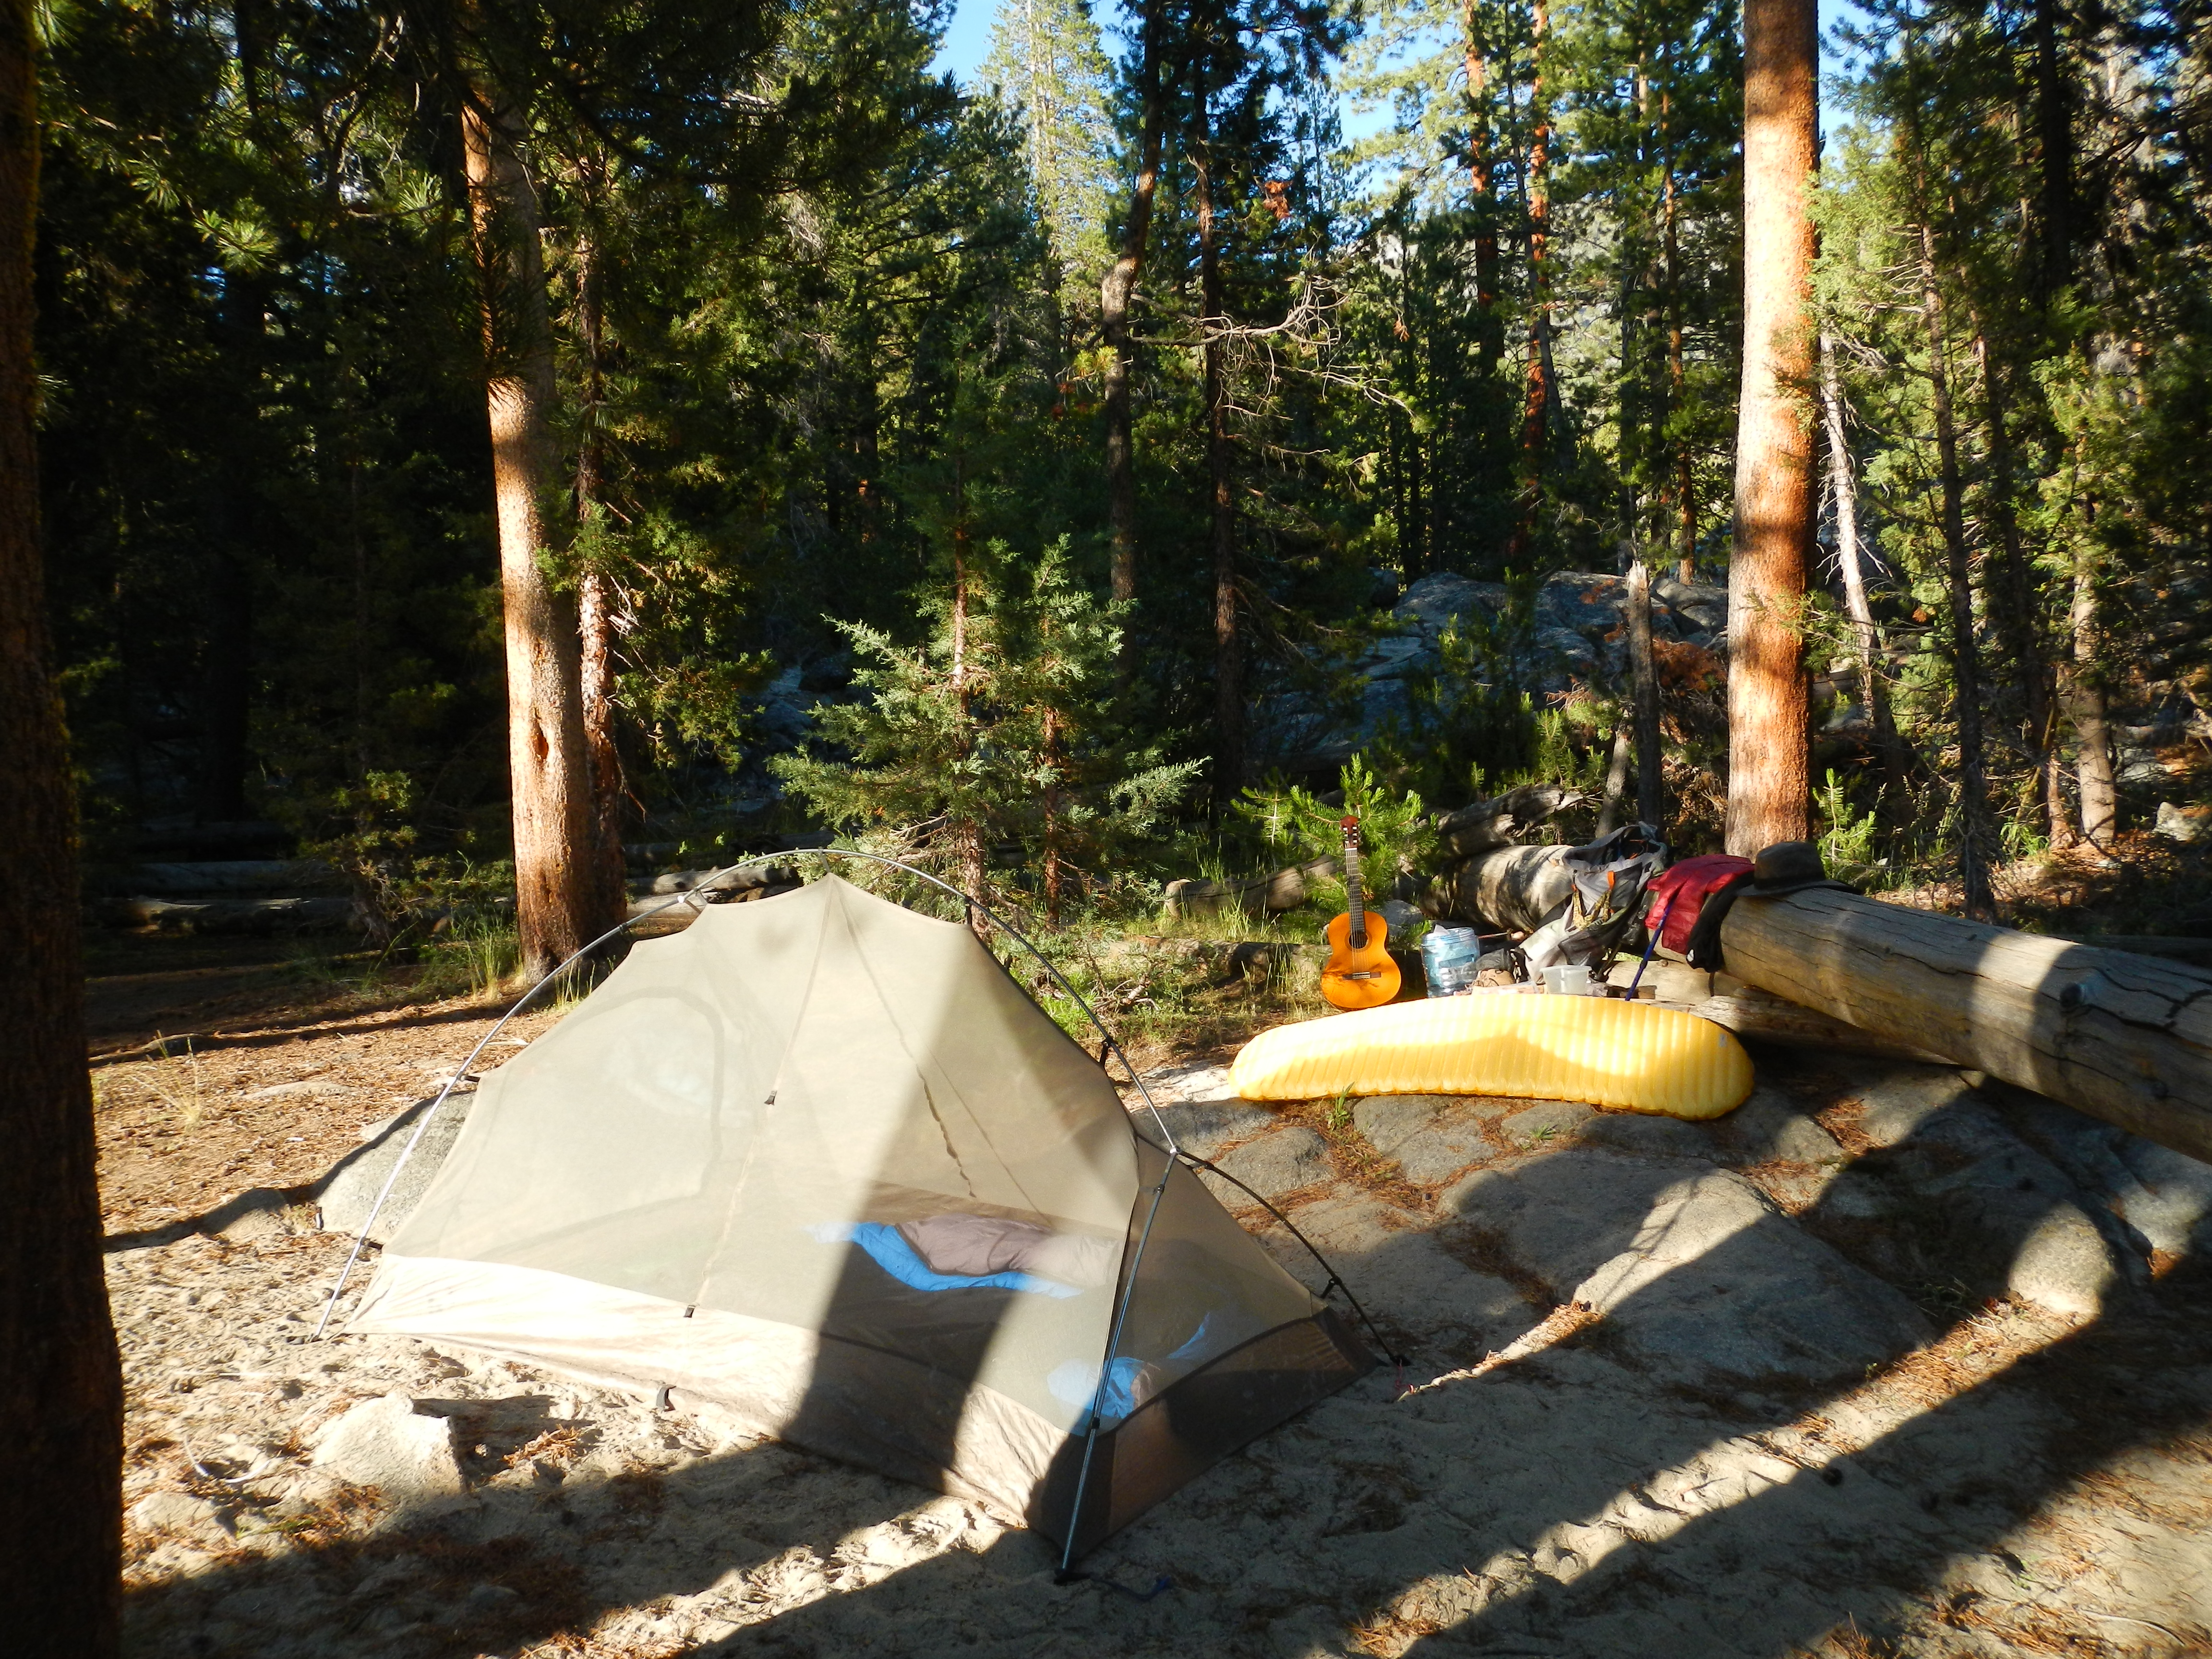 Camp next to the San Joaquin River